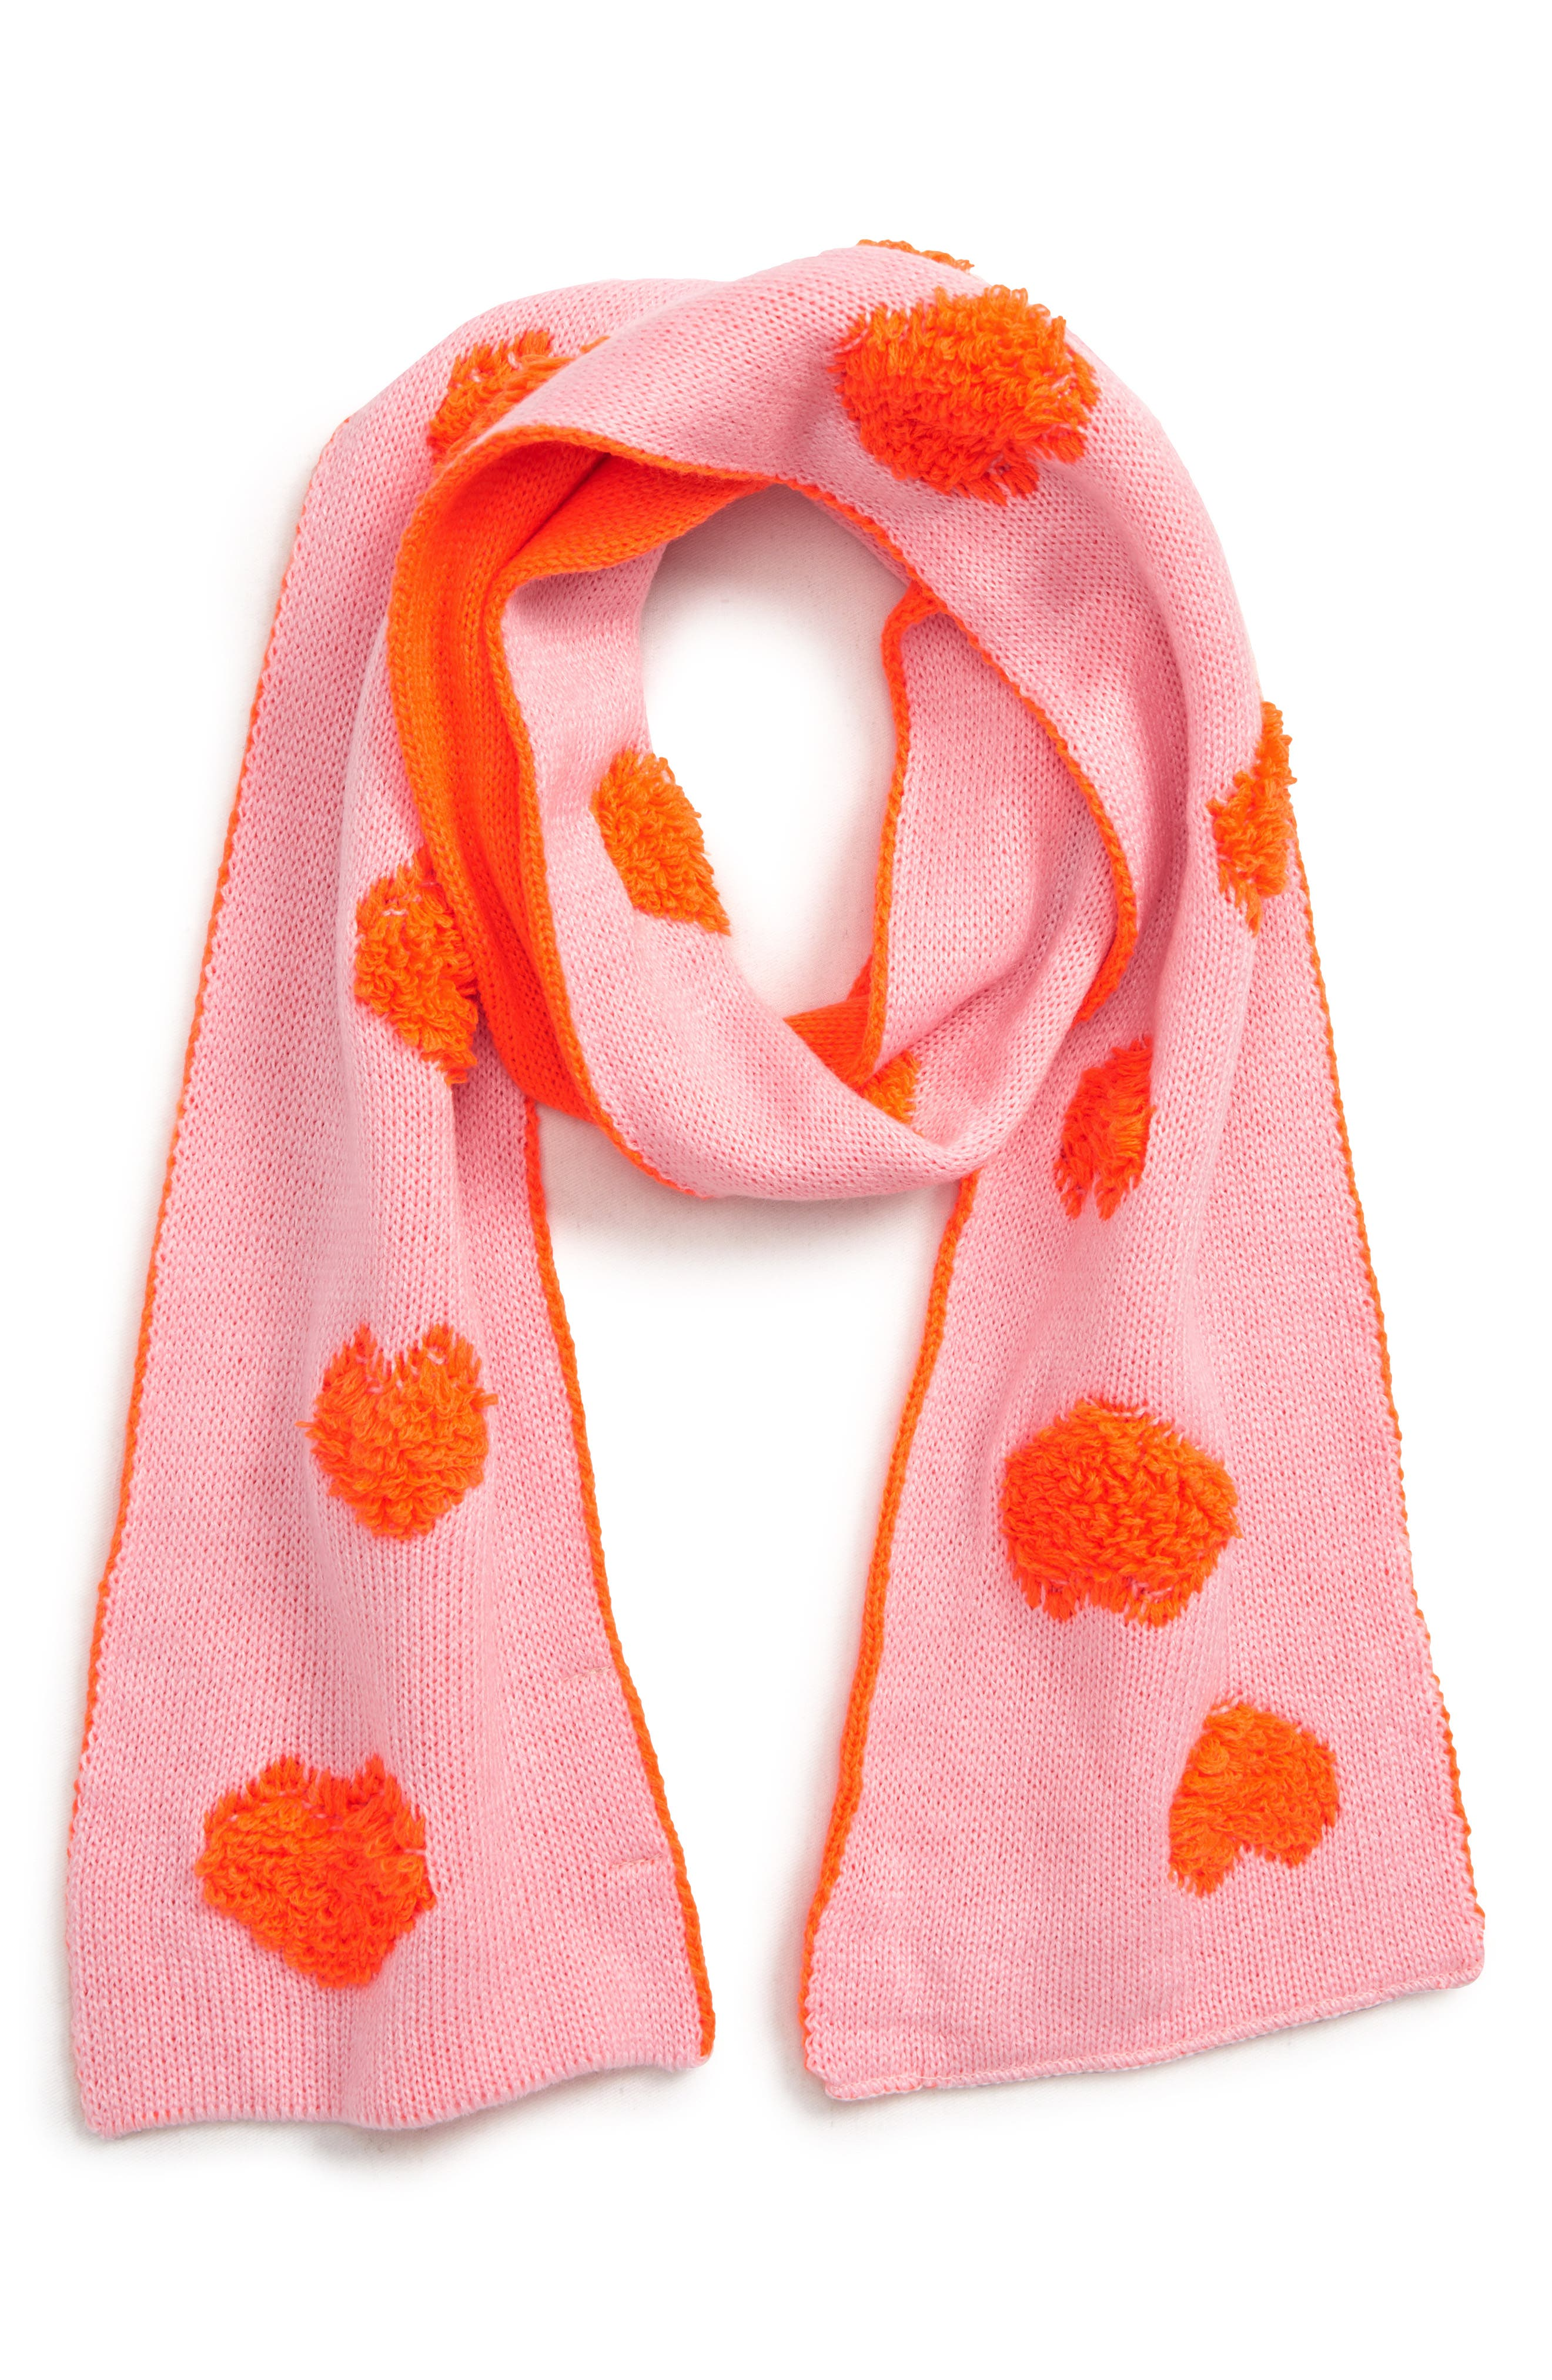 Neon Heart Scarf,                         Main,                         color, PINK PEACHSKIN- PINK HEARTS